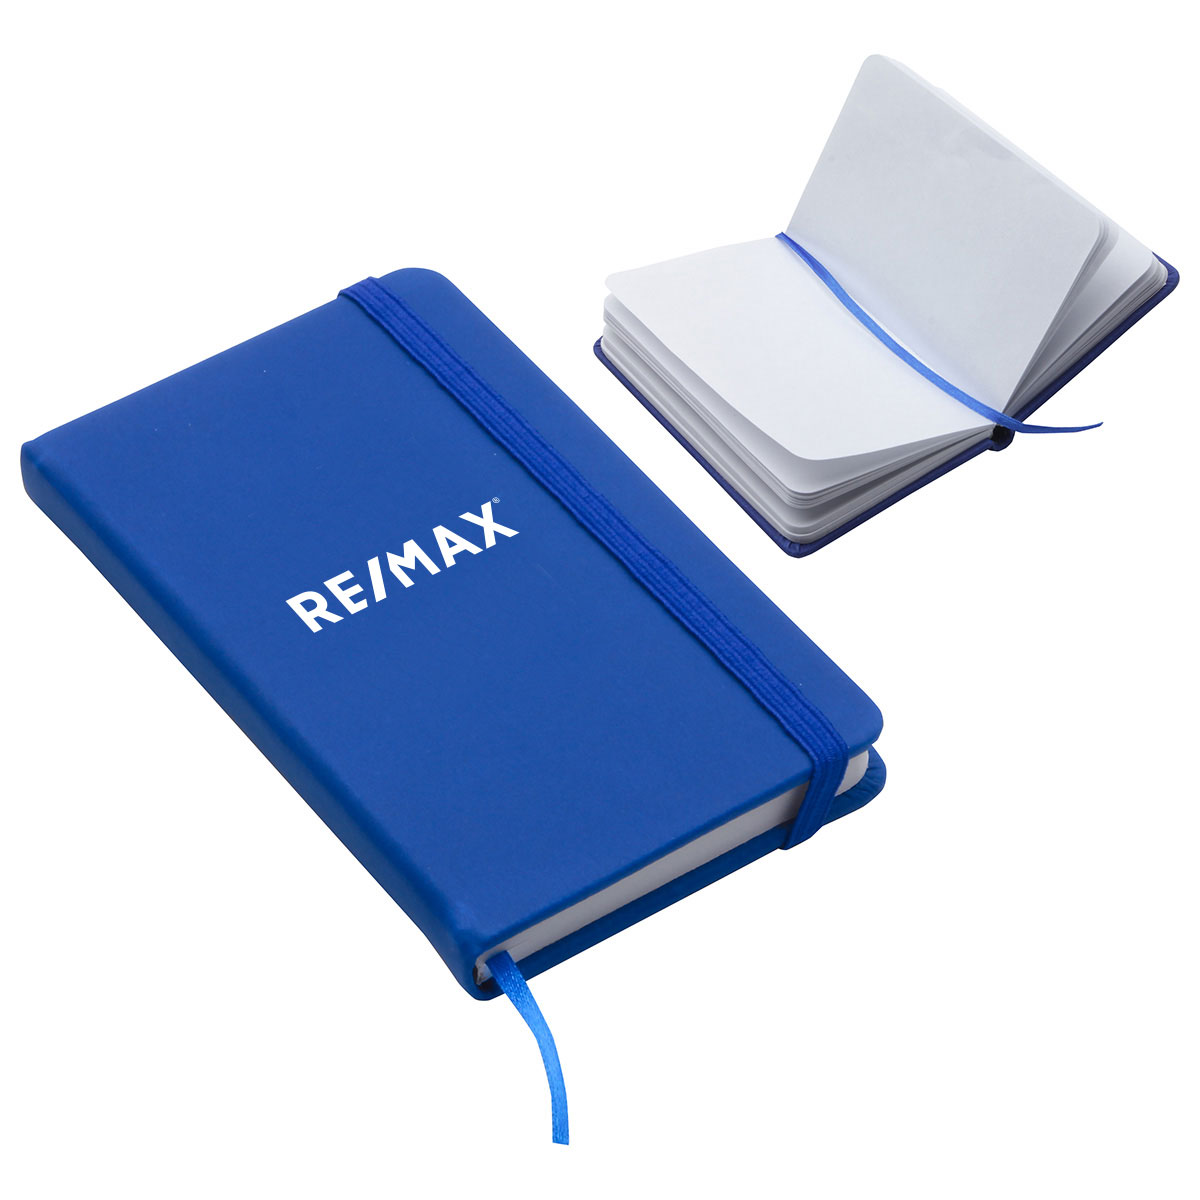 Recycled Pocket Journal Blue